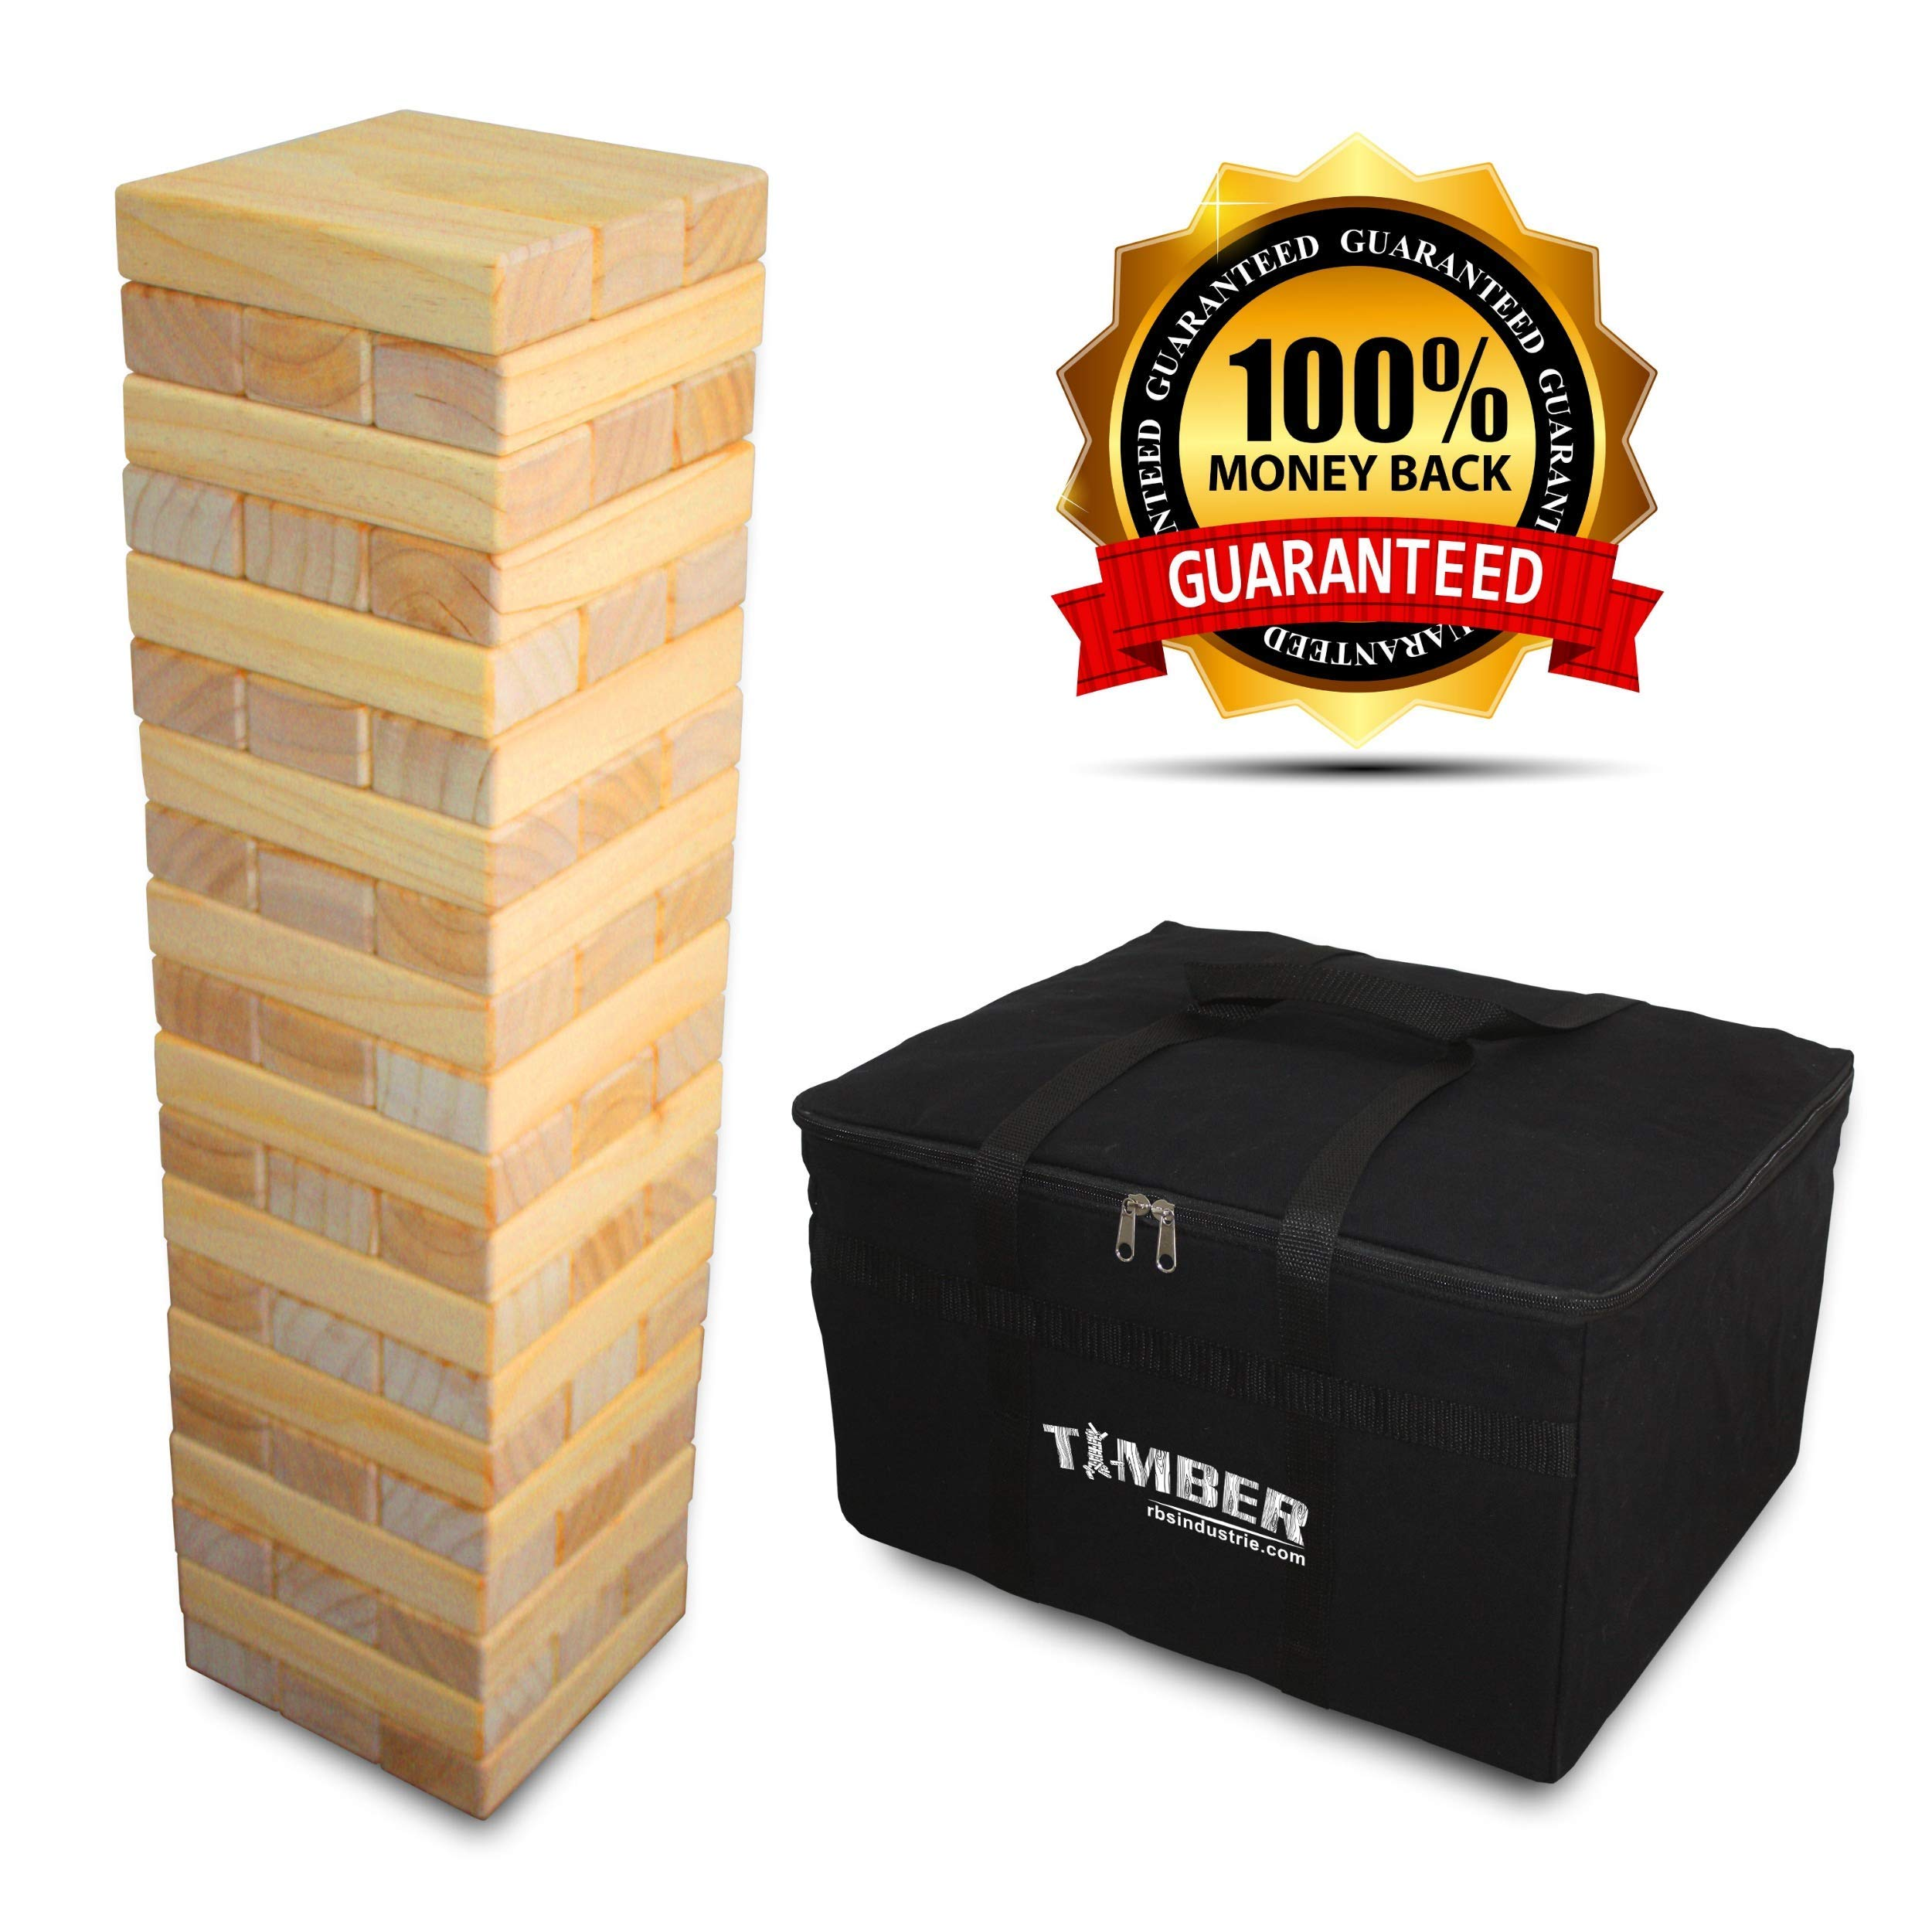 Giant Timber - Jumbo Size Wood Game - Ideal for Outdoors - Perfect for Adults, Kids XL Pcs 7.5 x 2.5 x 1.5 Inch